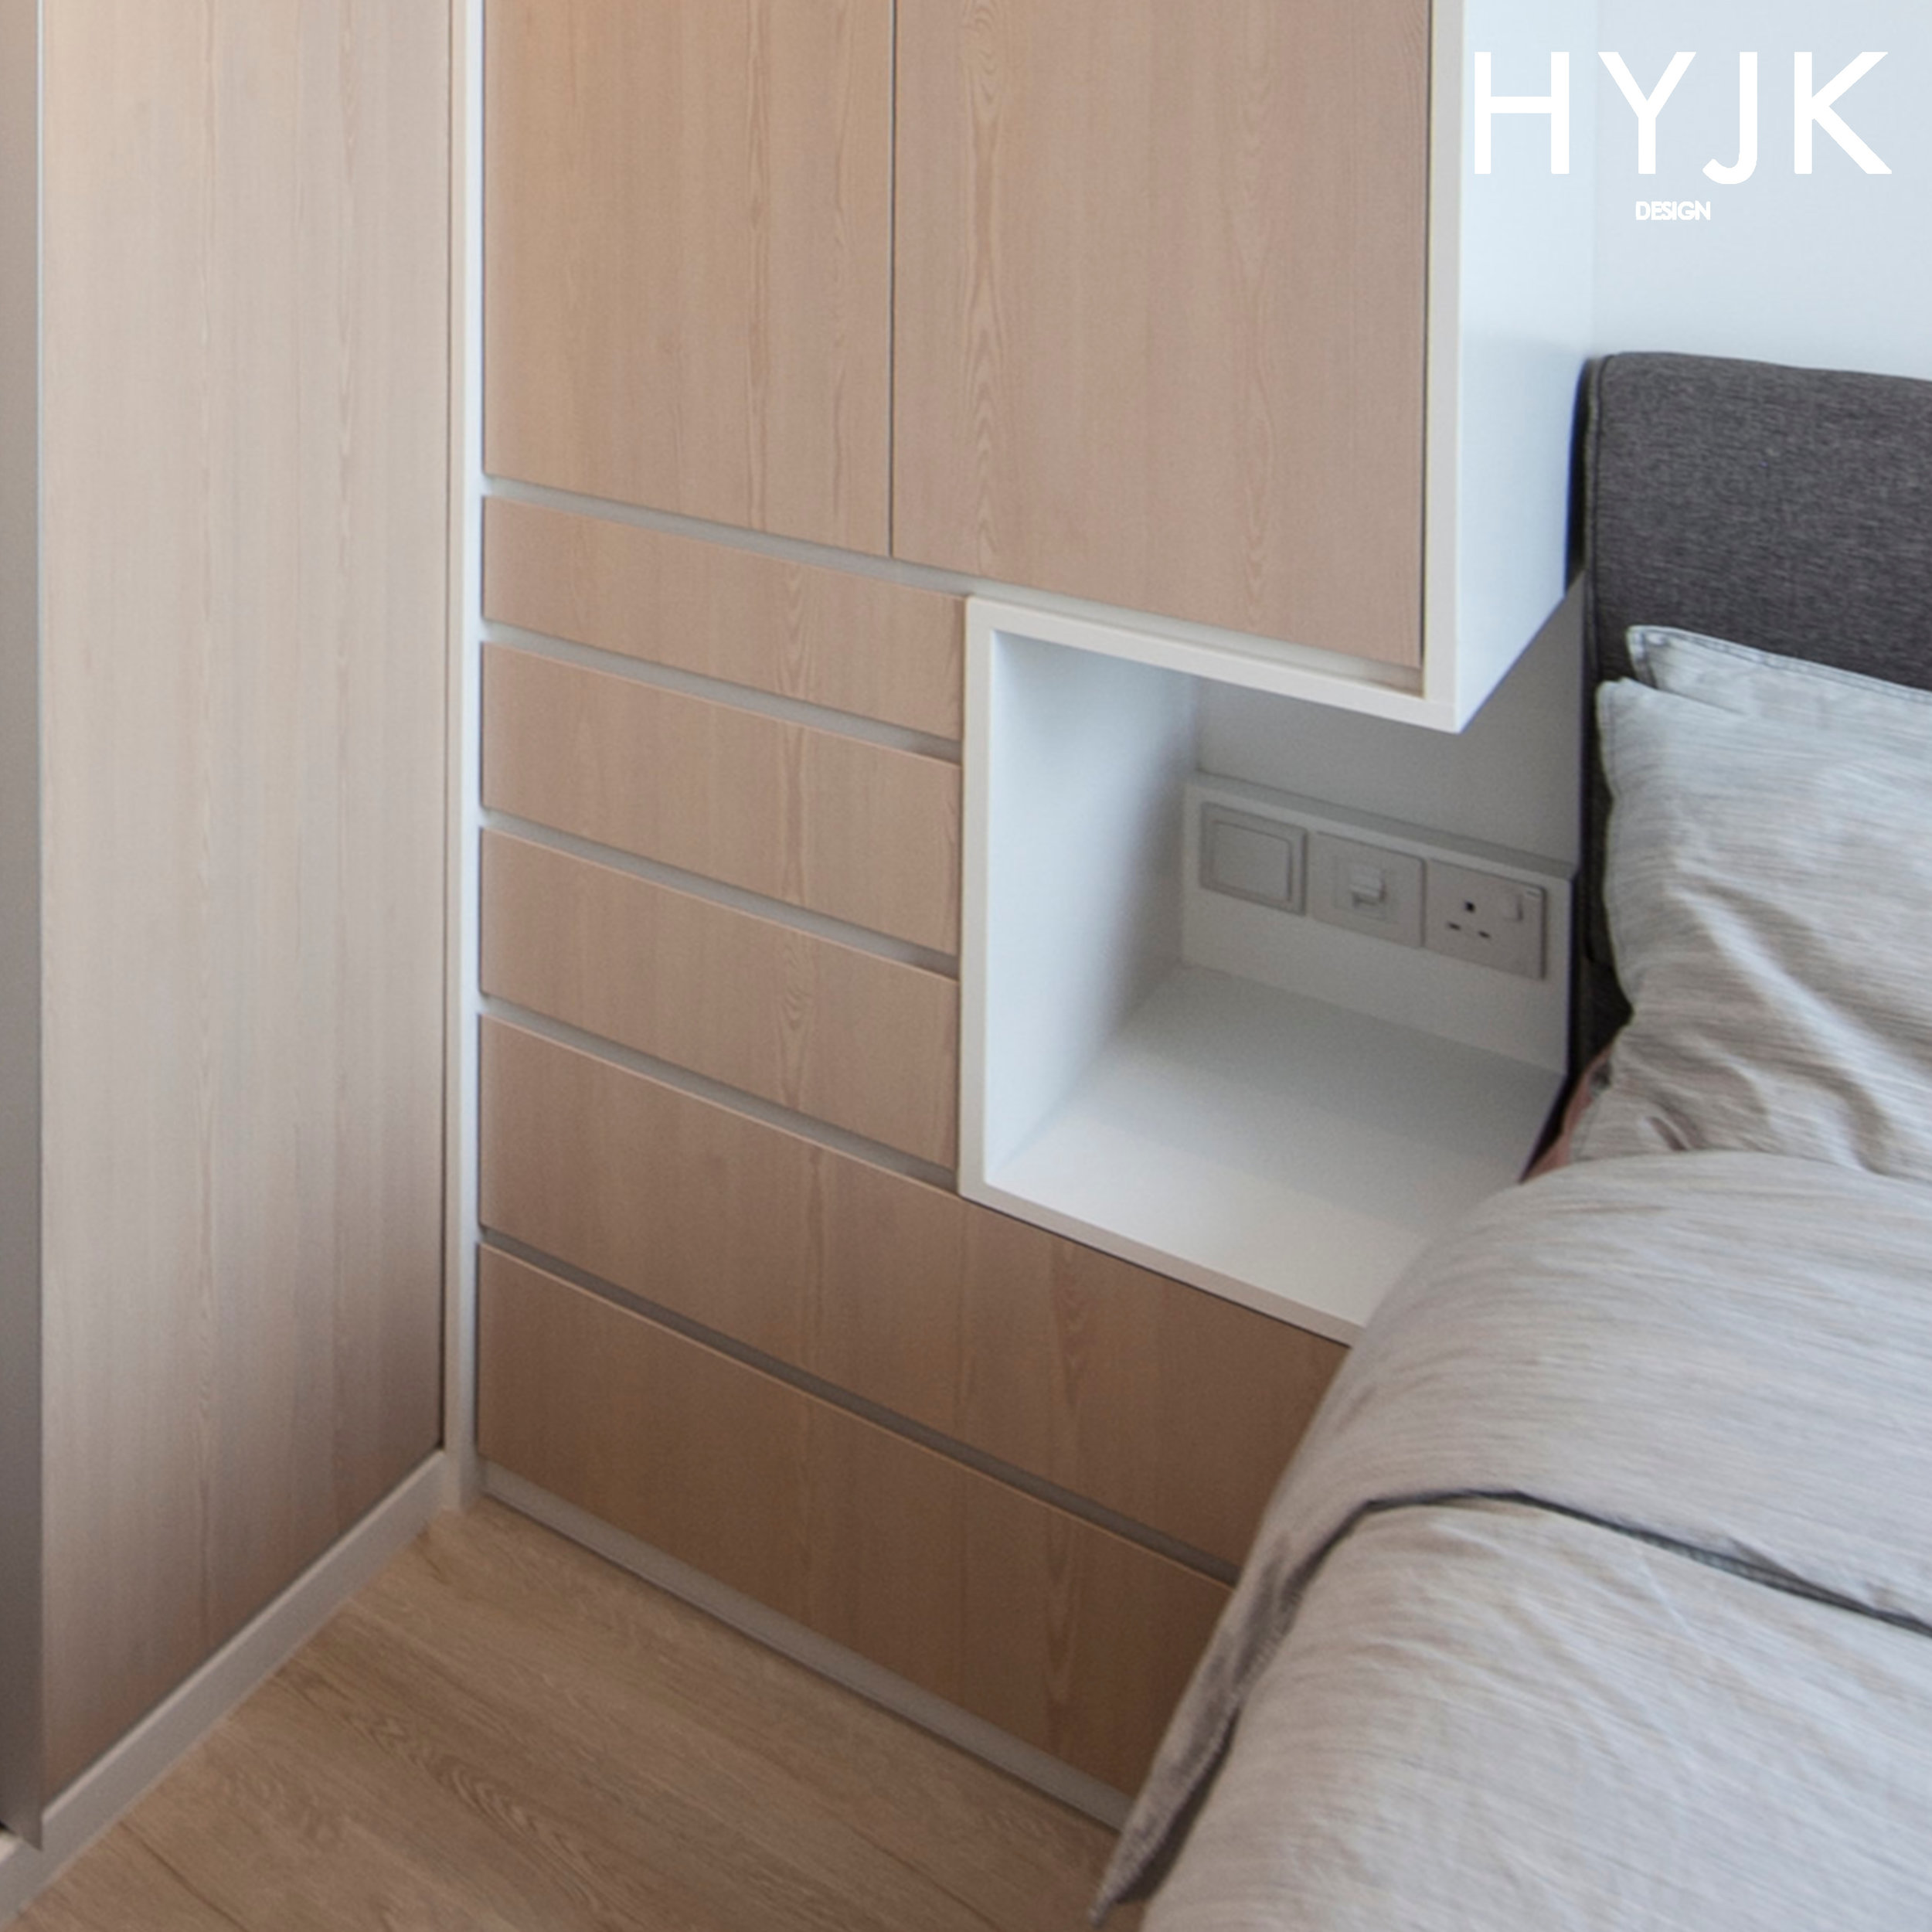 This wardrobe was designed to have a built-in bedside table. Knowing that there was insufficient space to install a stand-alone bedside table, our designers built a tiny nook into the wardrobe with plugs and light switches! (Project Chill Culture)